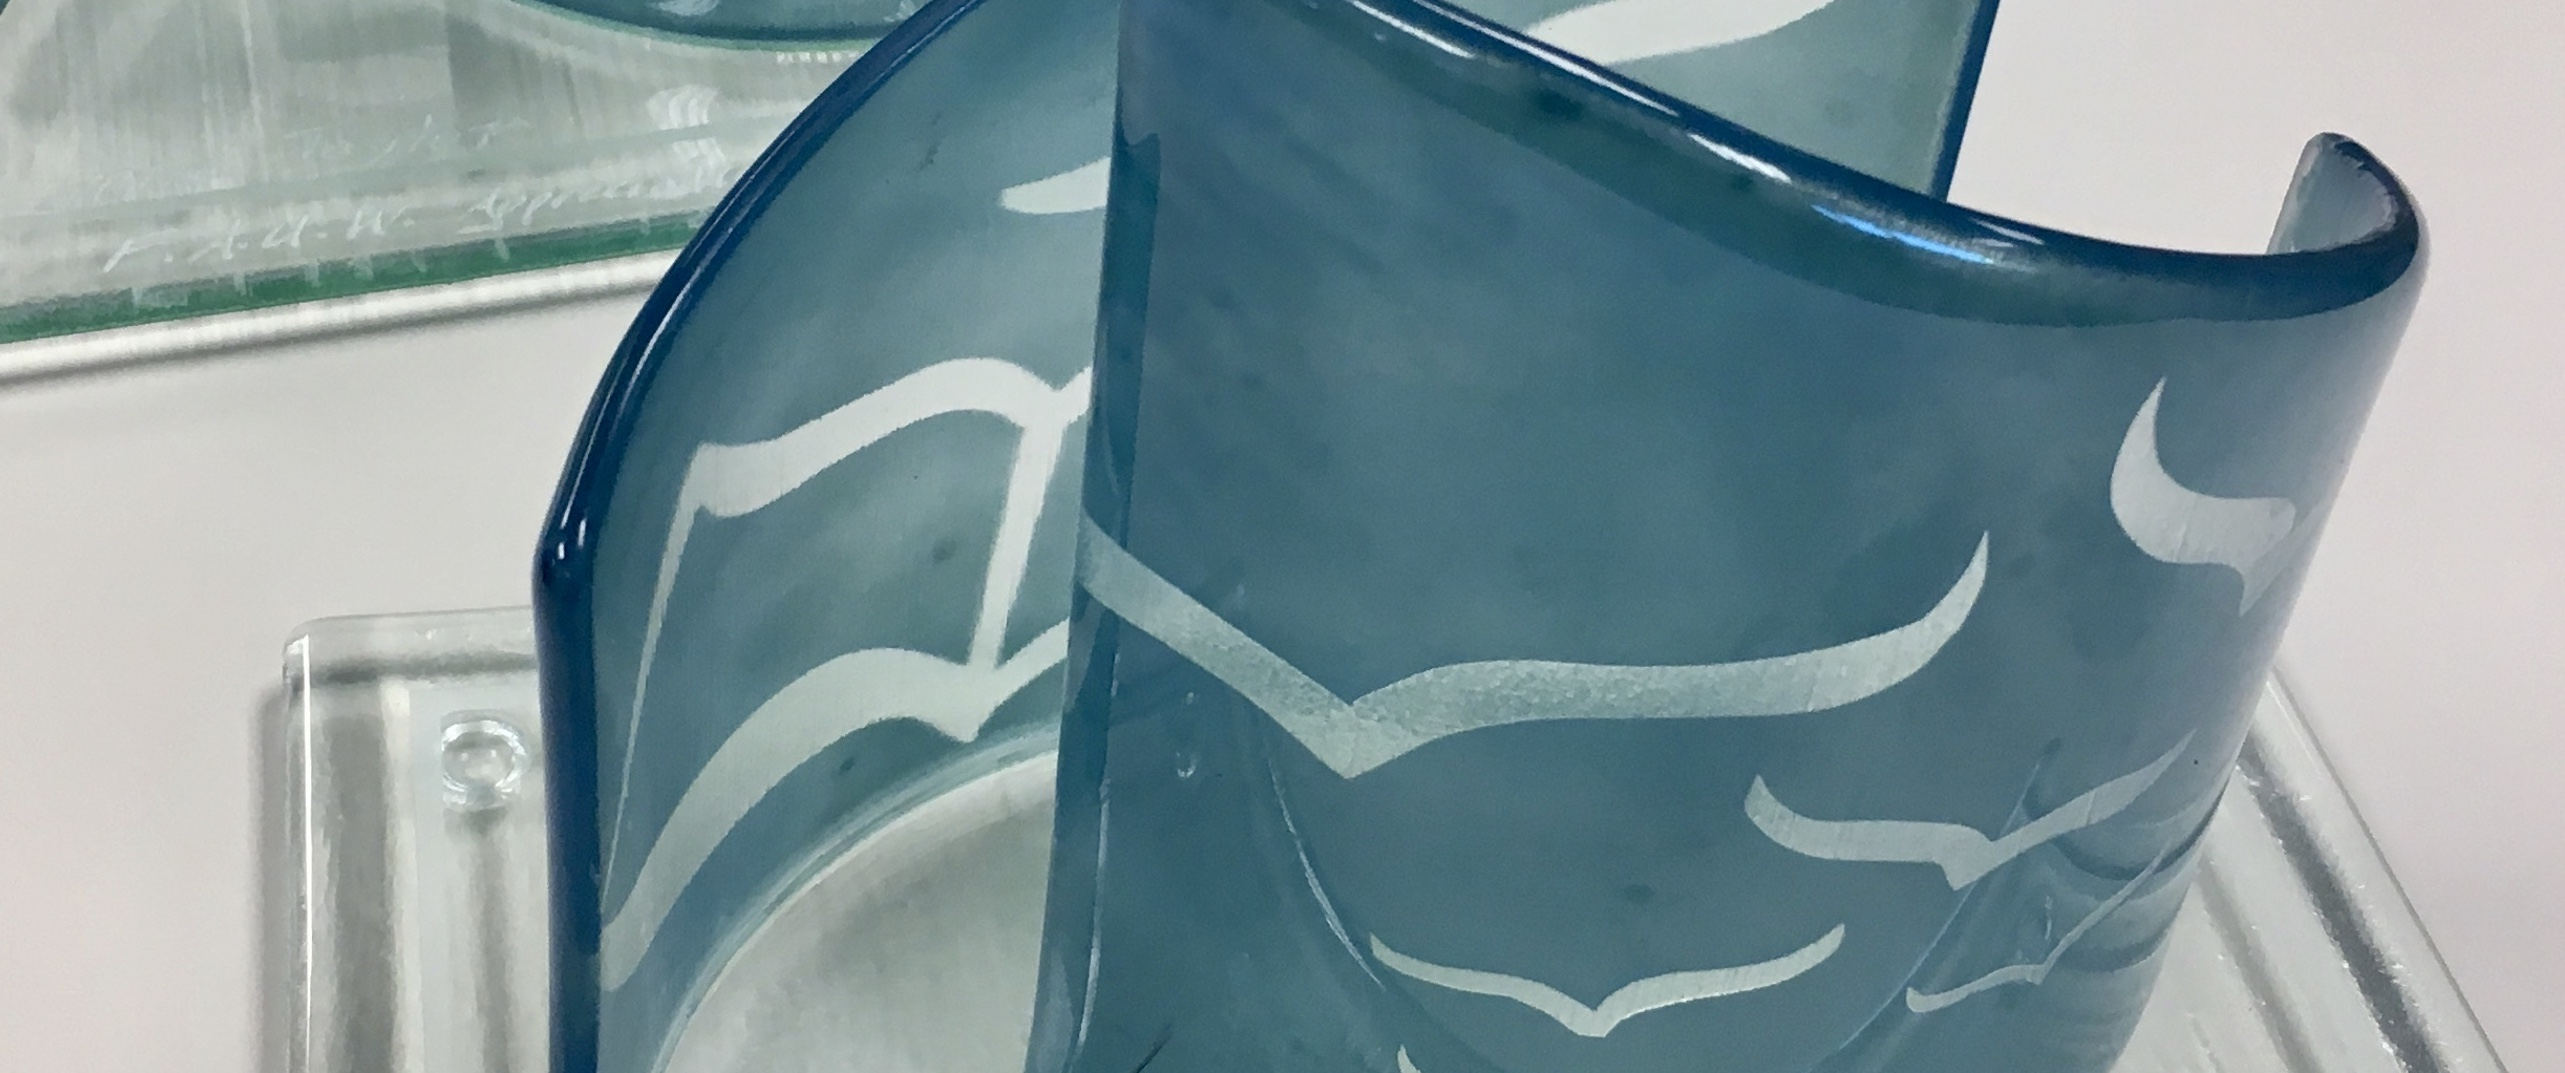 the award is made of two curved pieces of blue glass etched with the book and flying pages/birds from the FAUW logo.